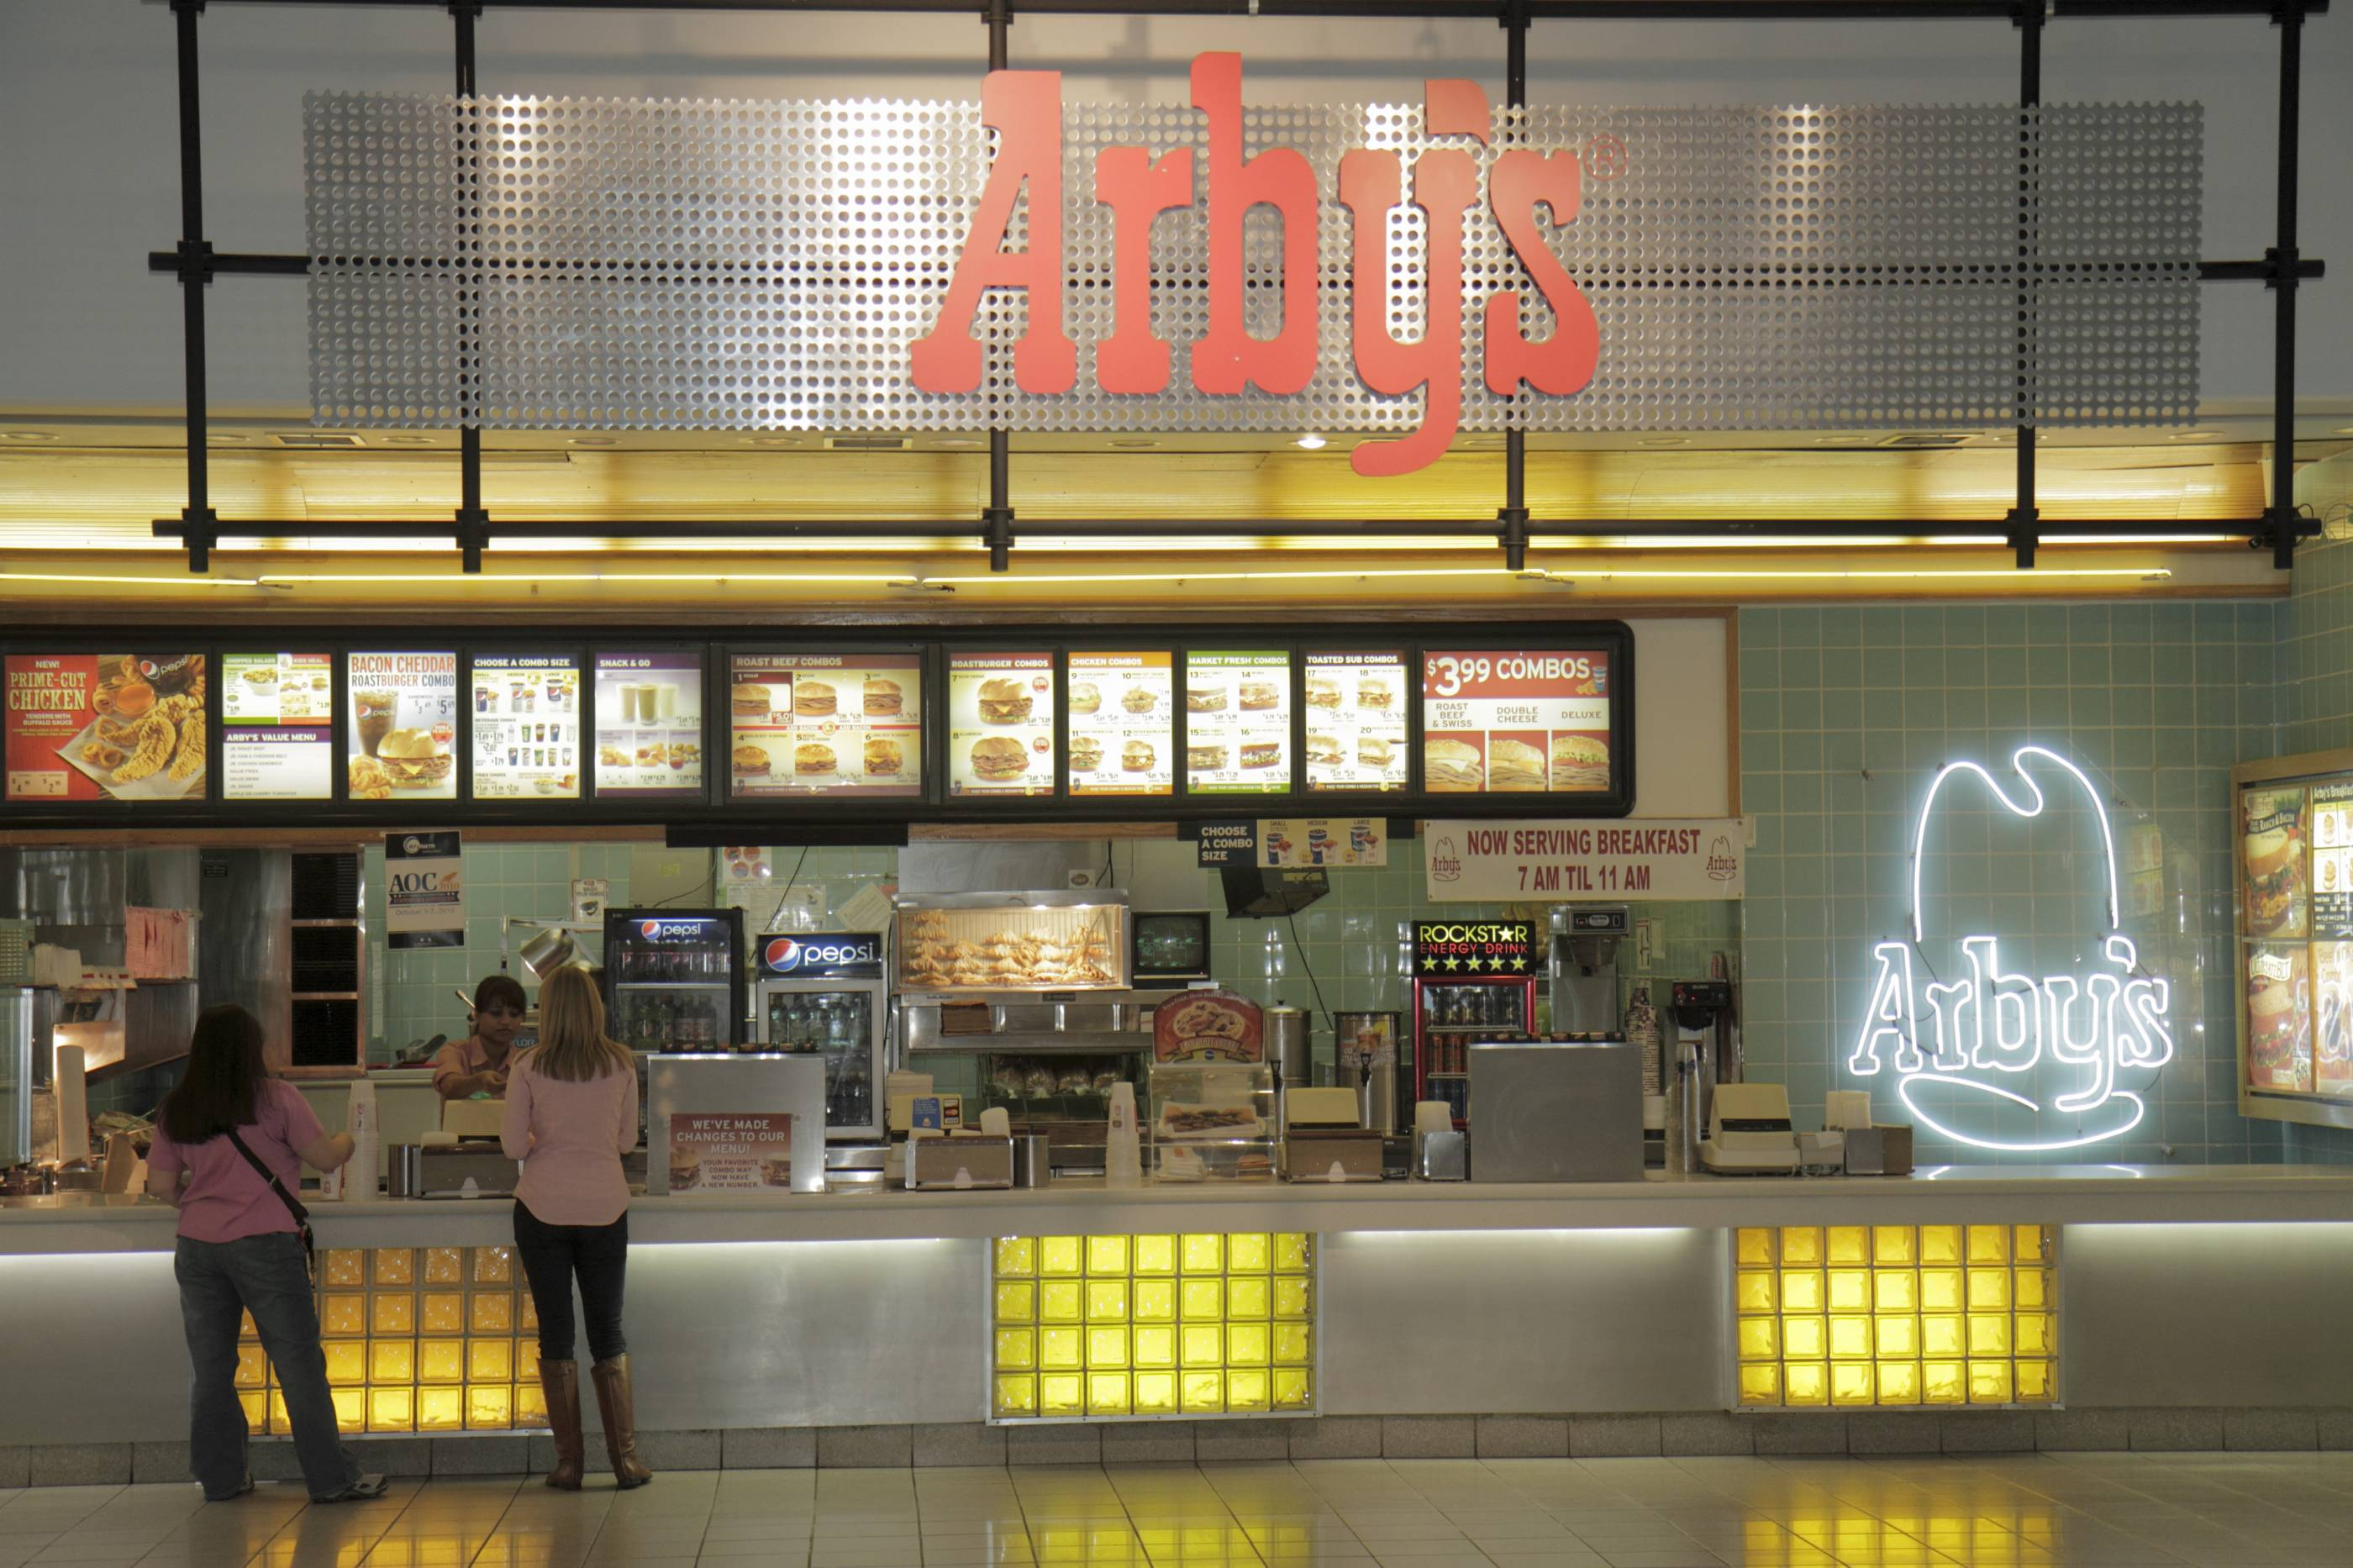 Arby's refuses to join in the meatless craze by adding a plant-based sandwich or burger to its menu.